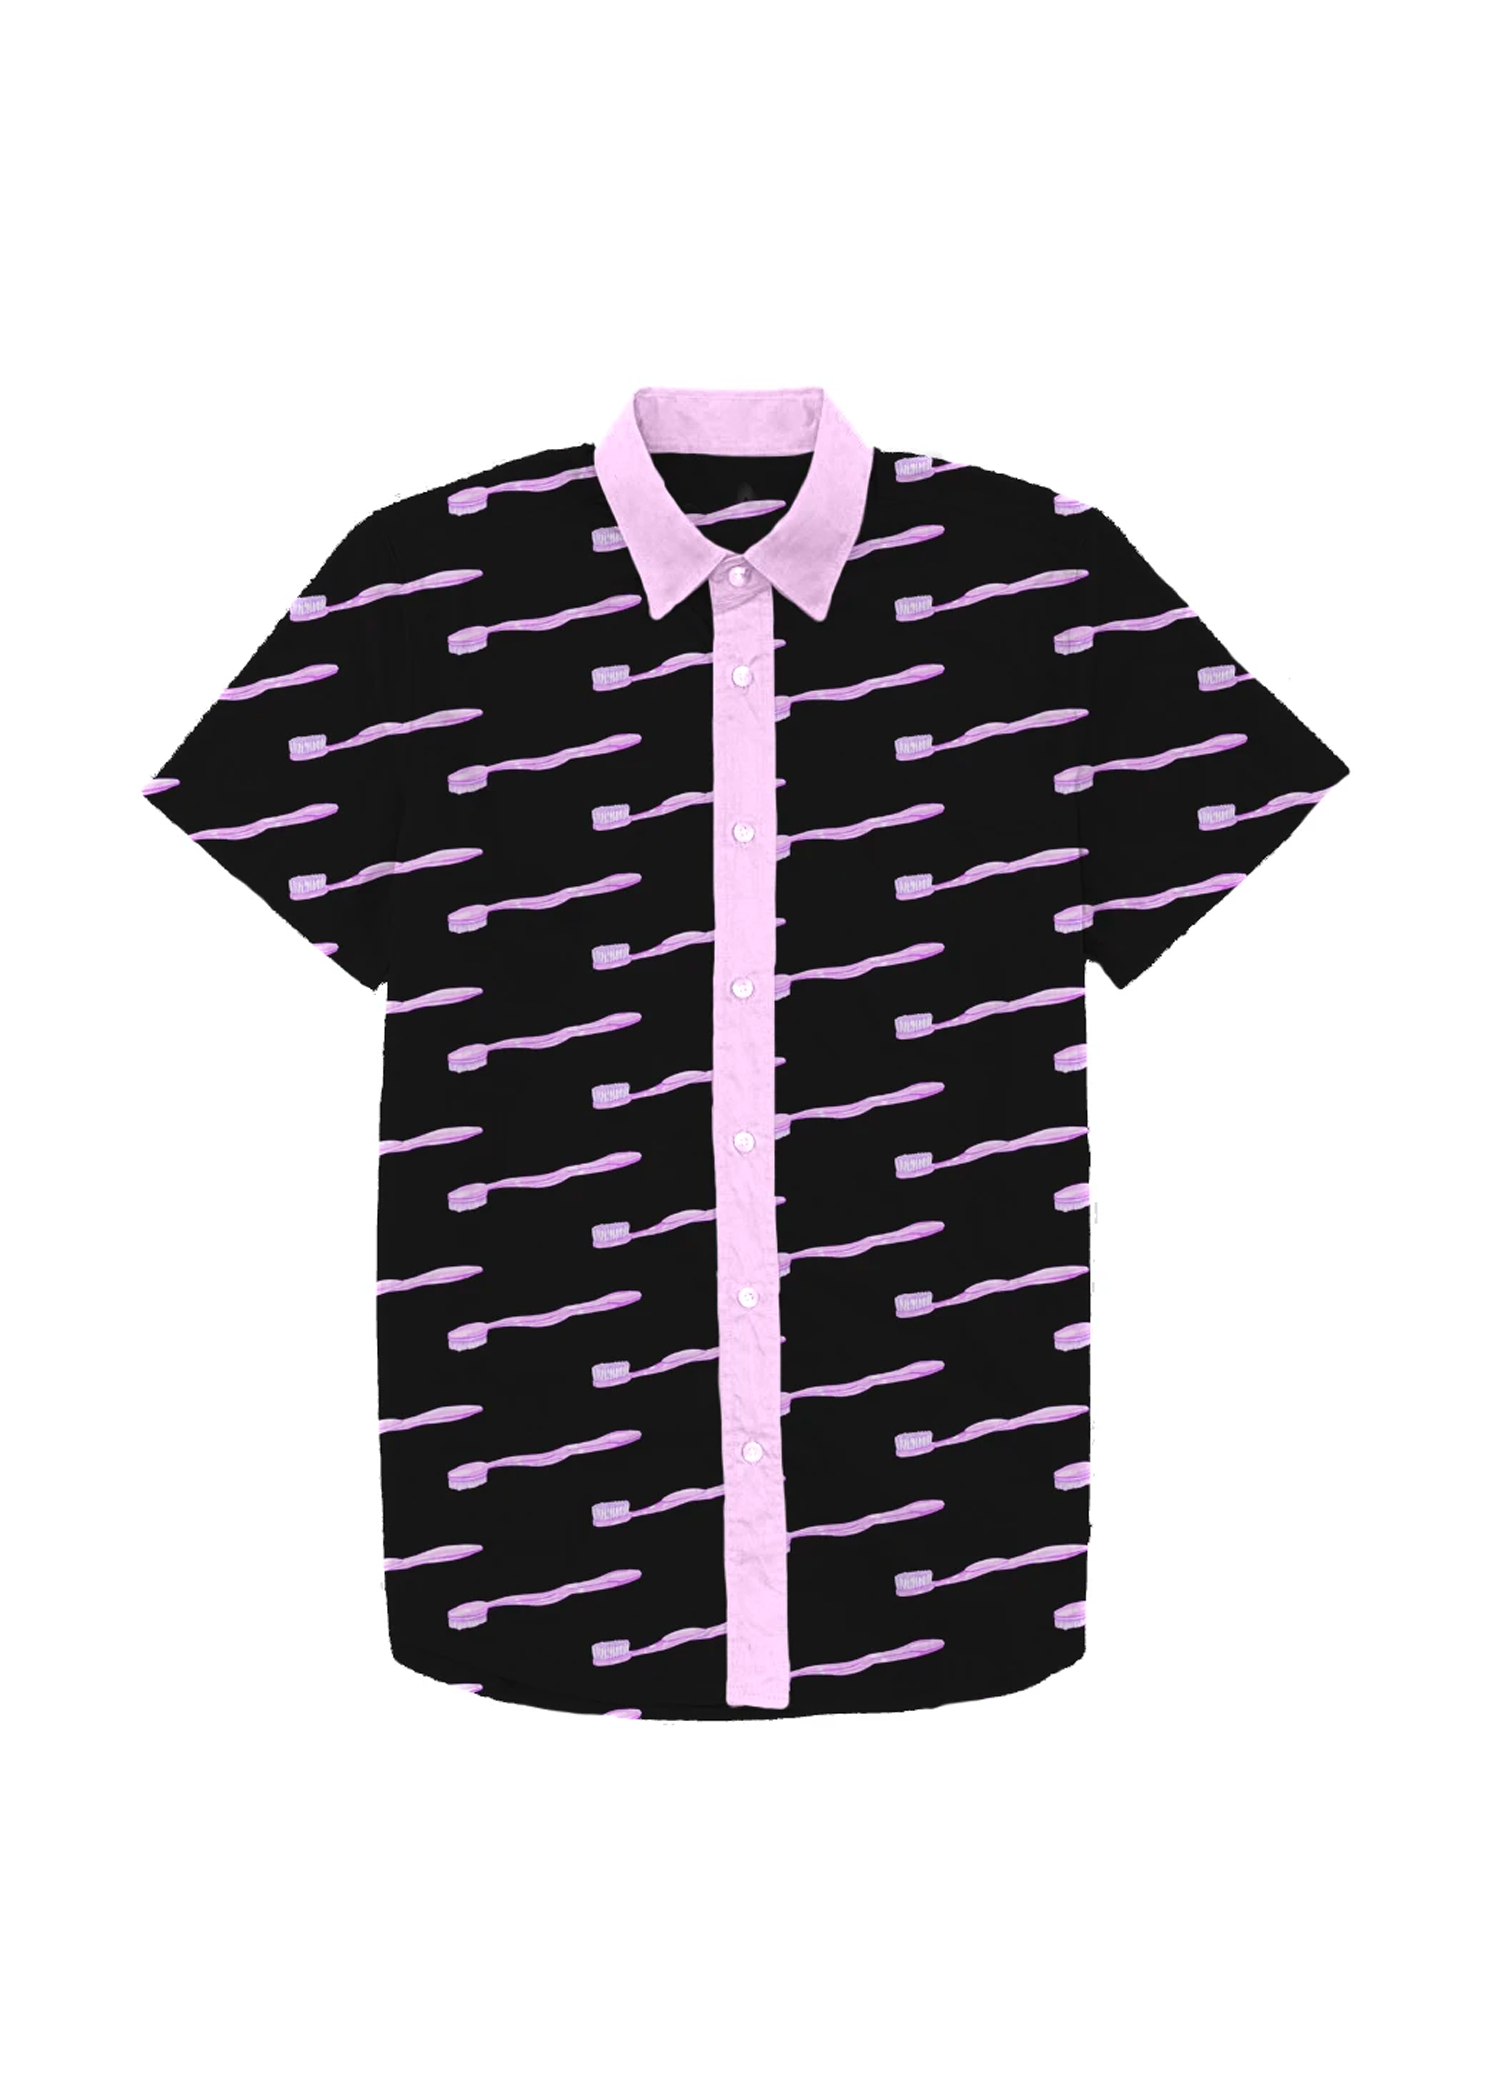 toothbrush dad shirt in black & lilac